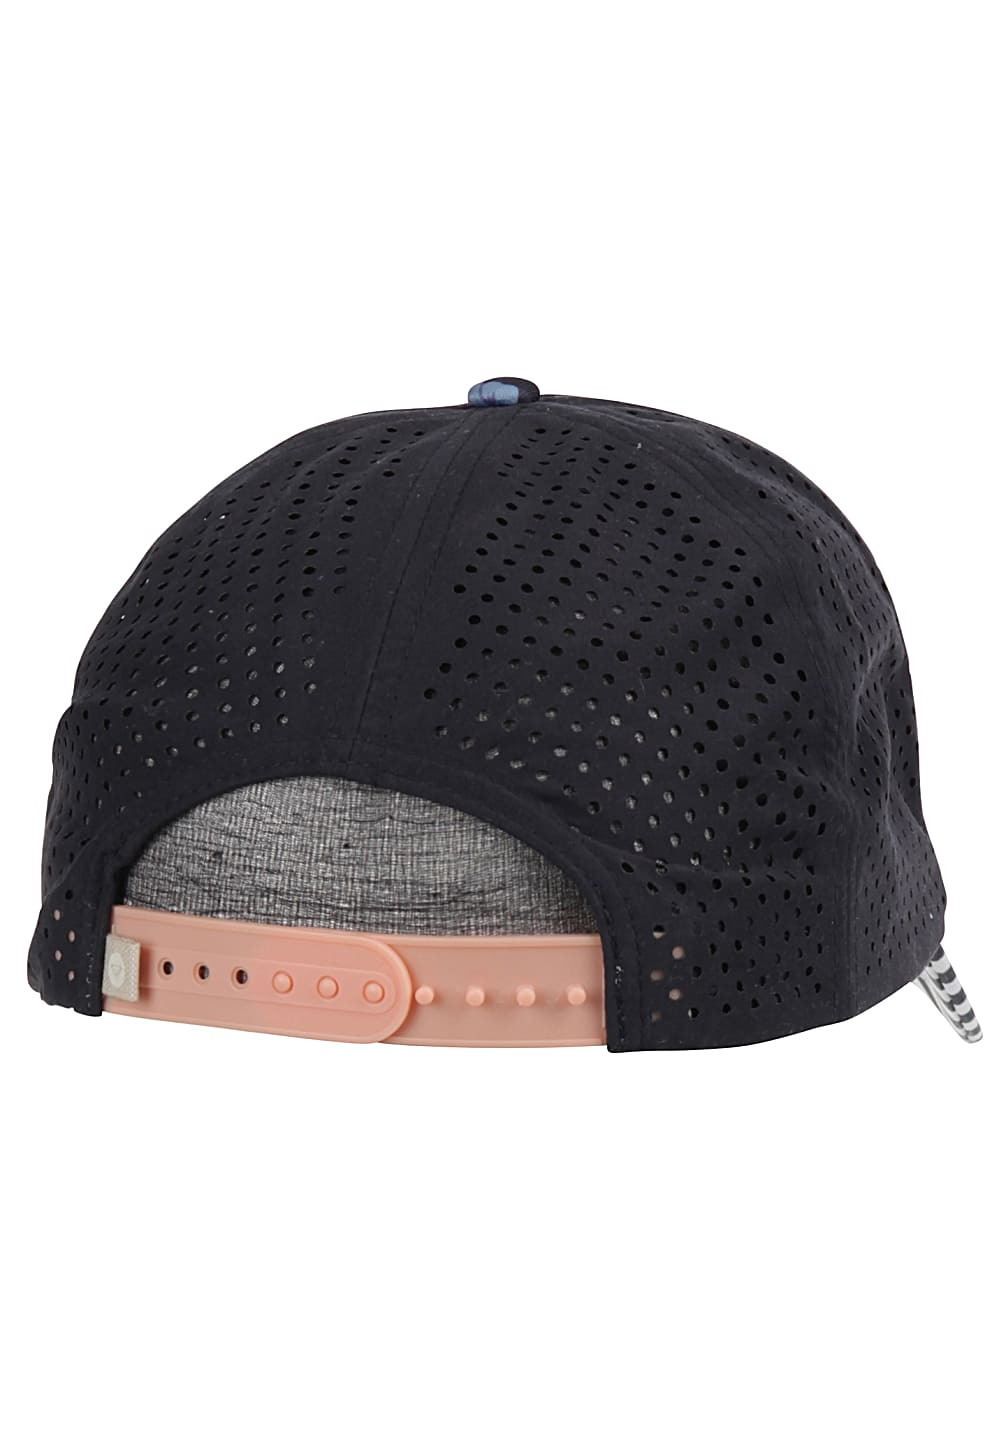 99703904bf3b9 Next. Roxy. Wave Machine - Trucker Cap for Women. €29.95. incl. VAT plus  shipping costs. Size Chart